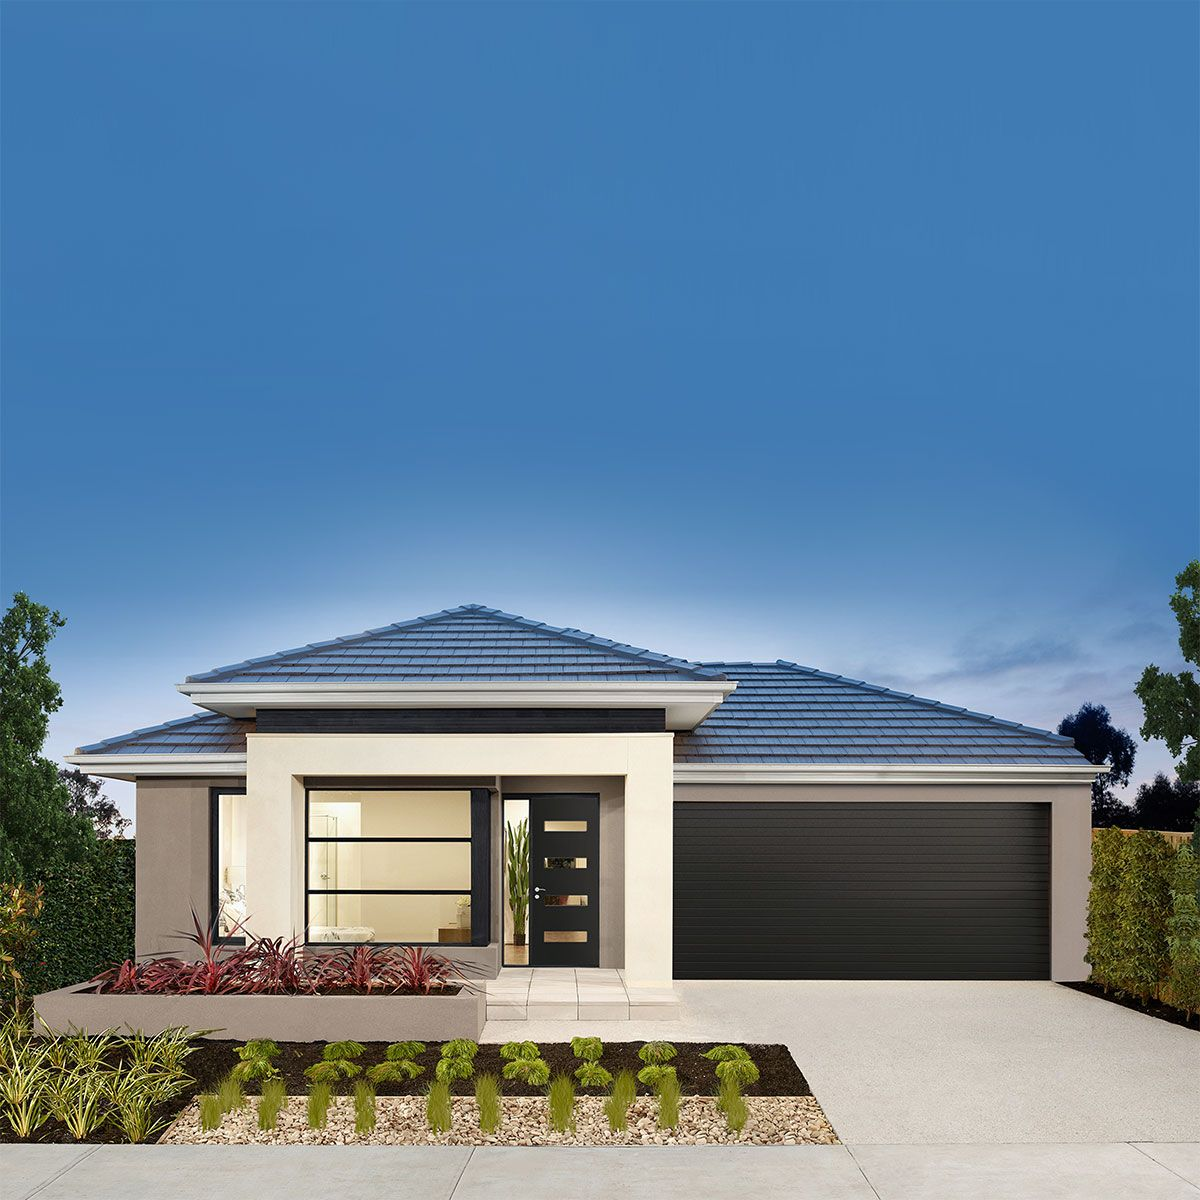 Airlie Single Storey Home Design With Viva Facade Airlie